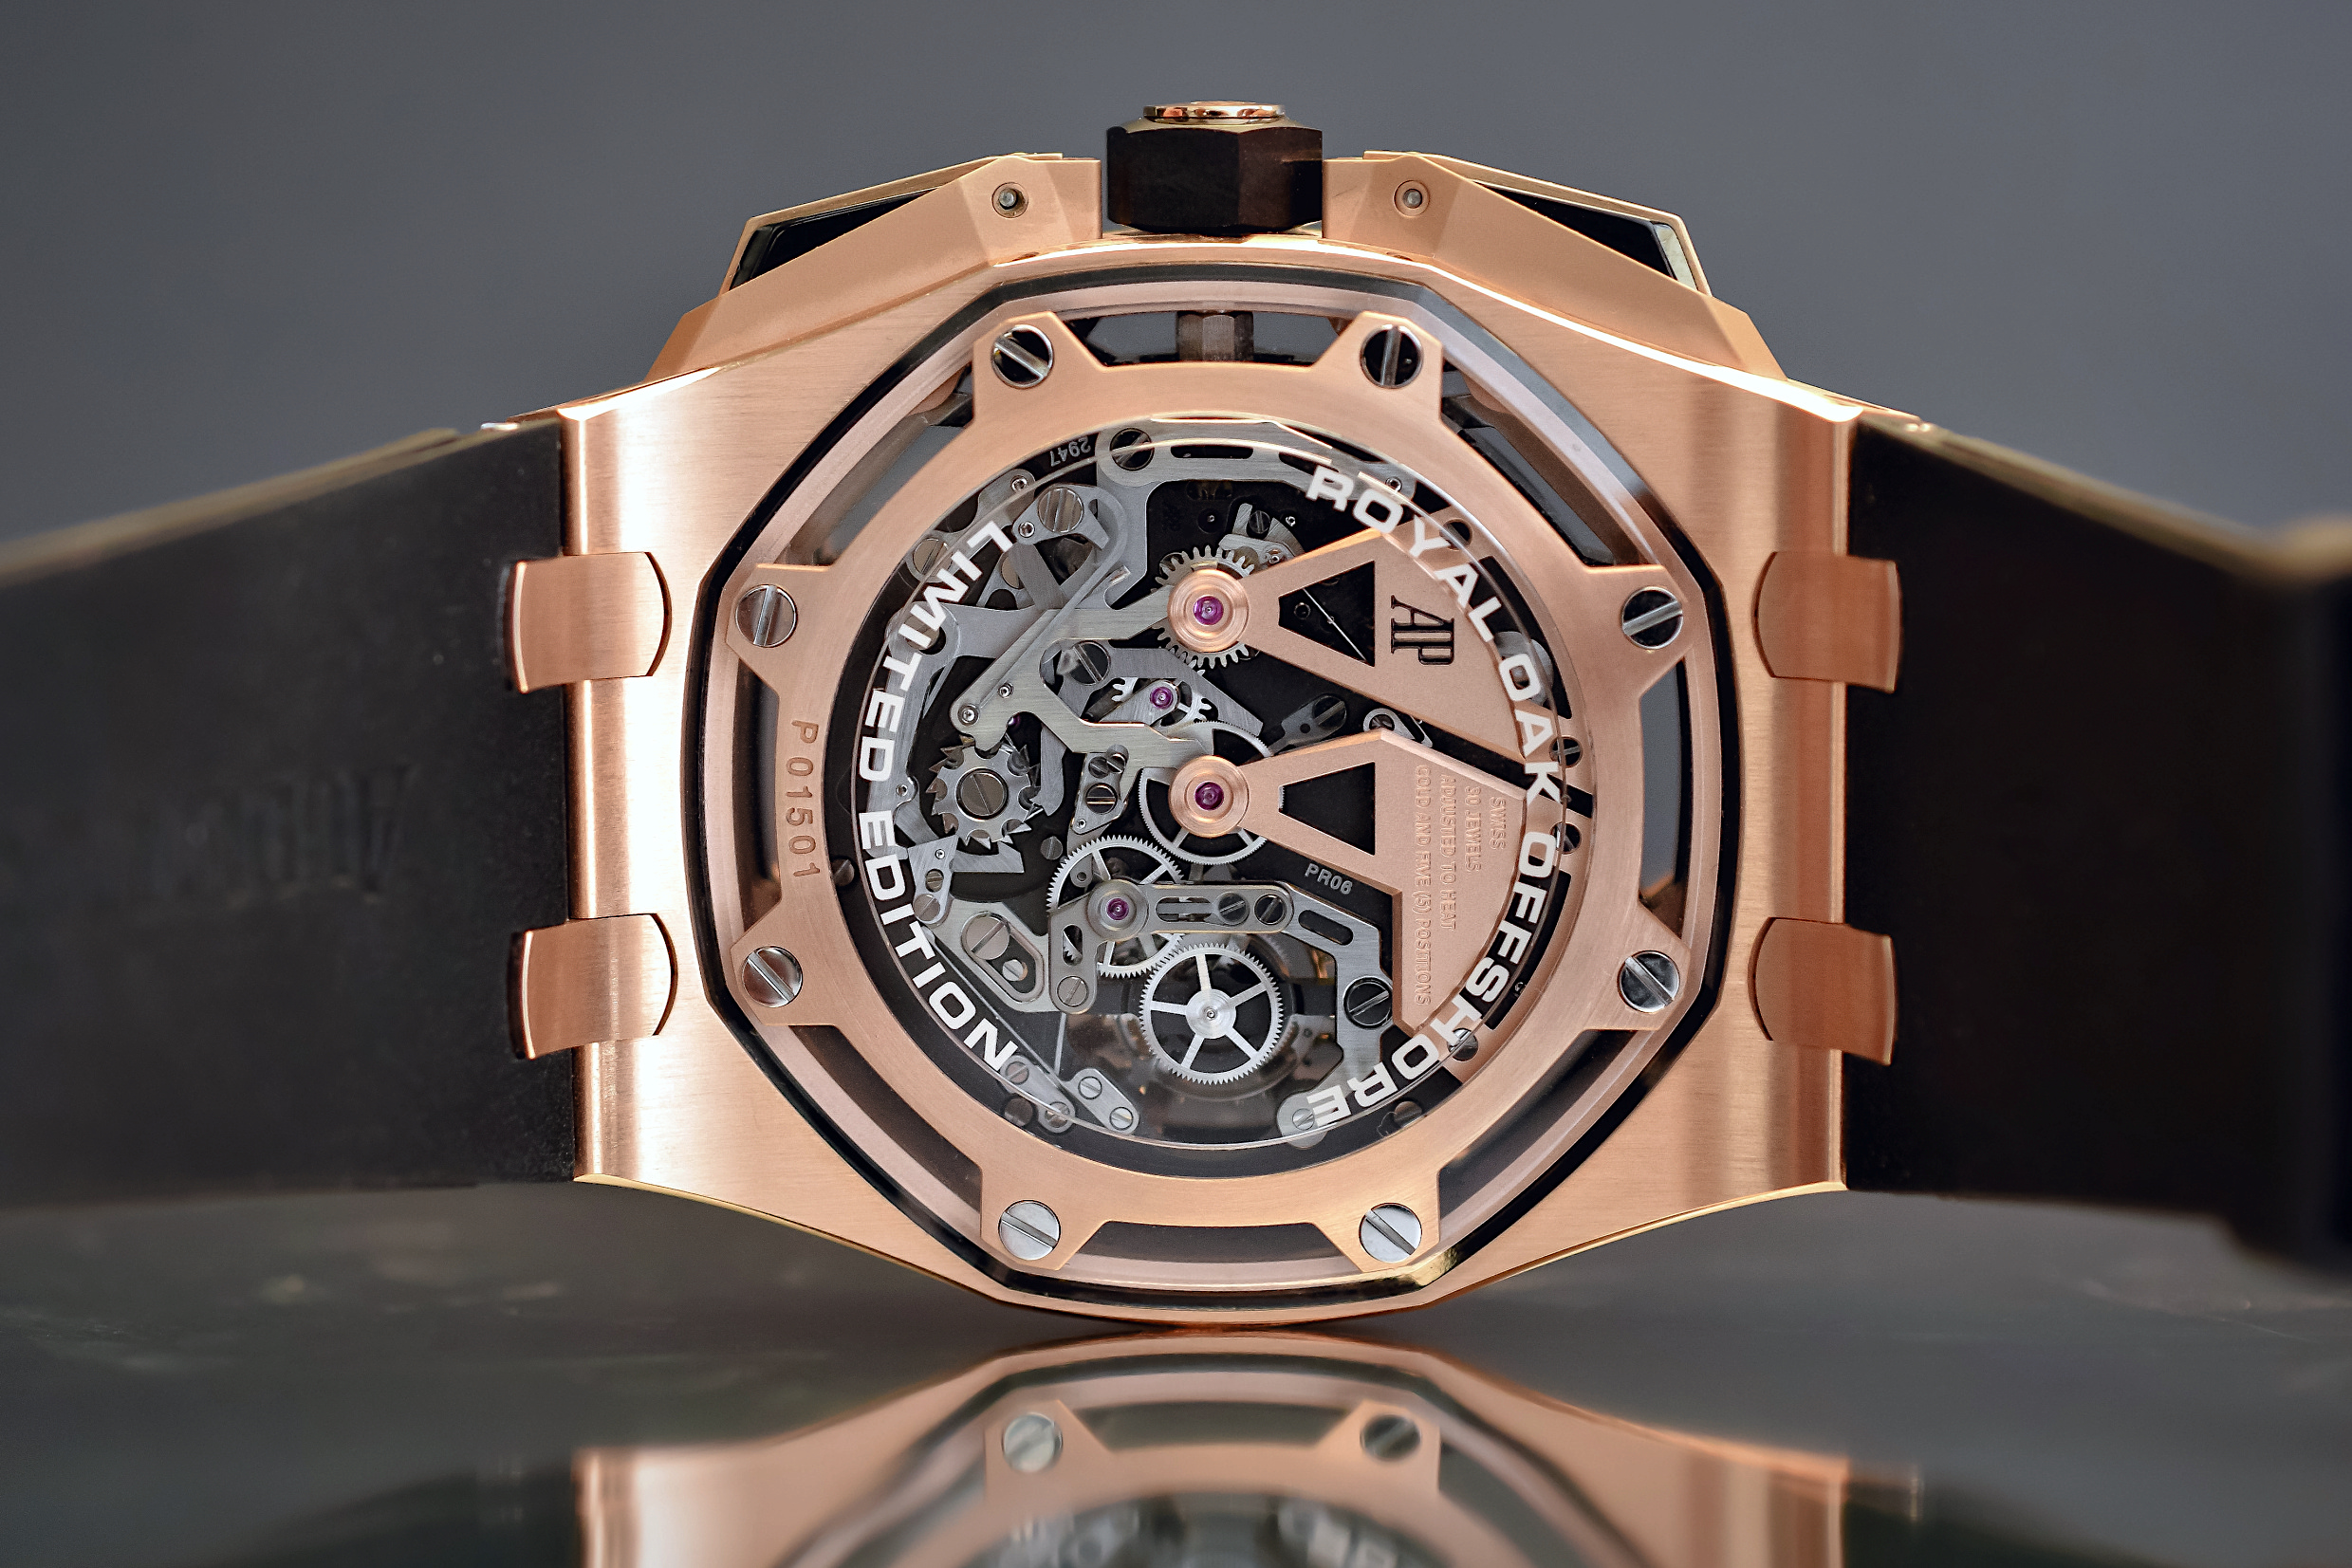 Audemars Piguet Royal Oak Offshore for the  25th anniversary  @AudmemarsPiguet #SIHH2018